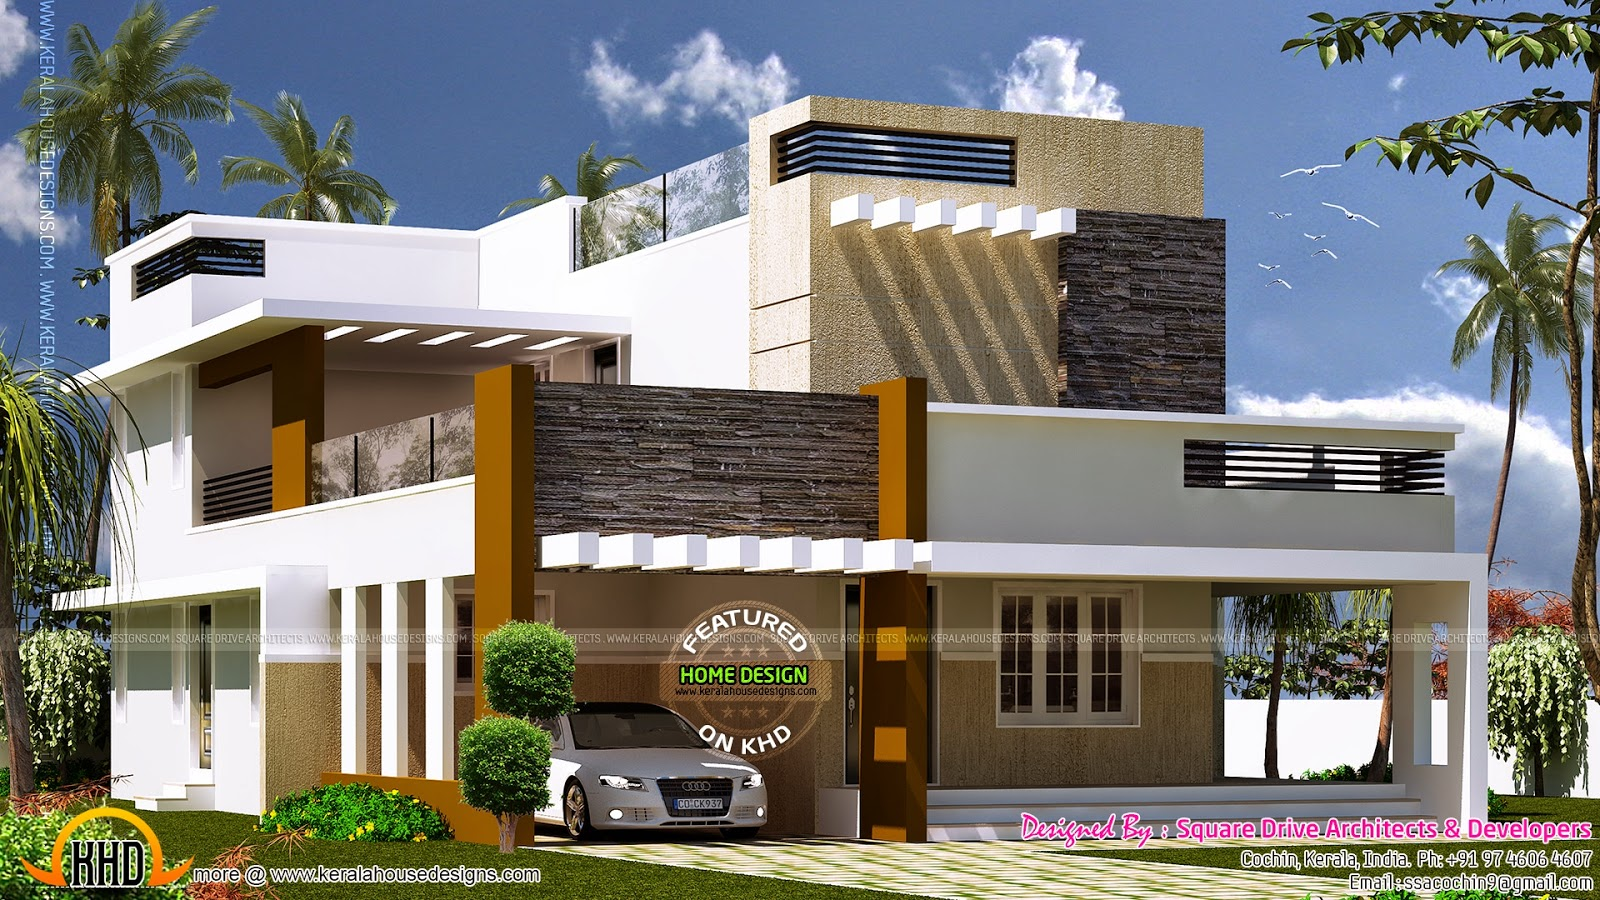 Exterior design of contemporary villa kerala home design for Best exterior home designs in india